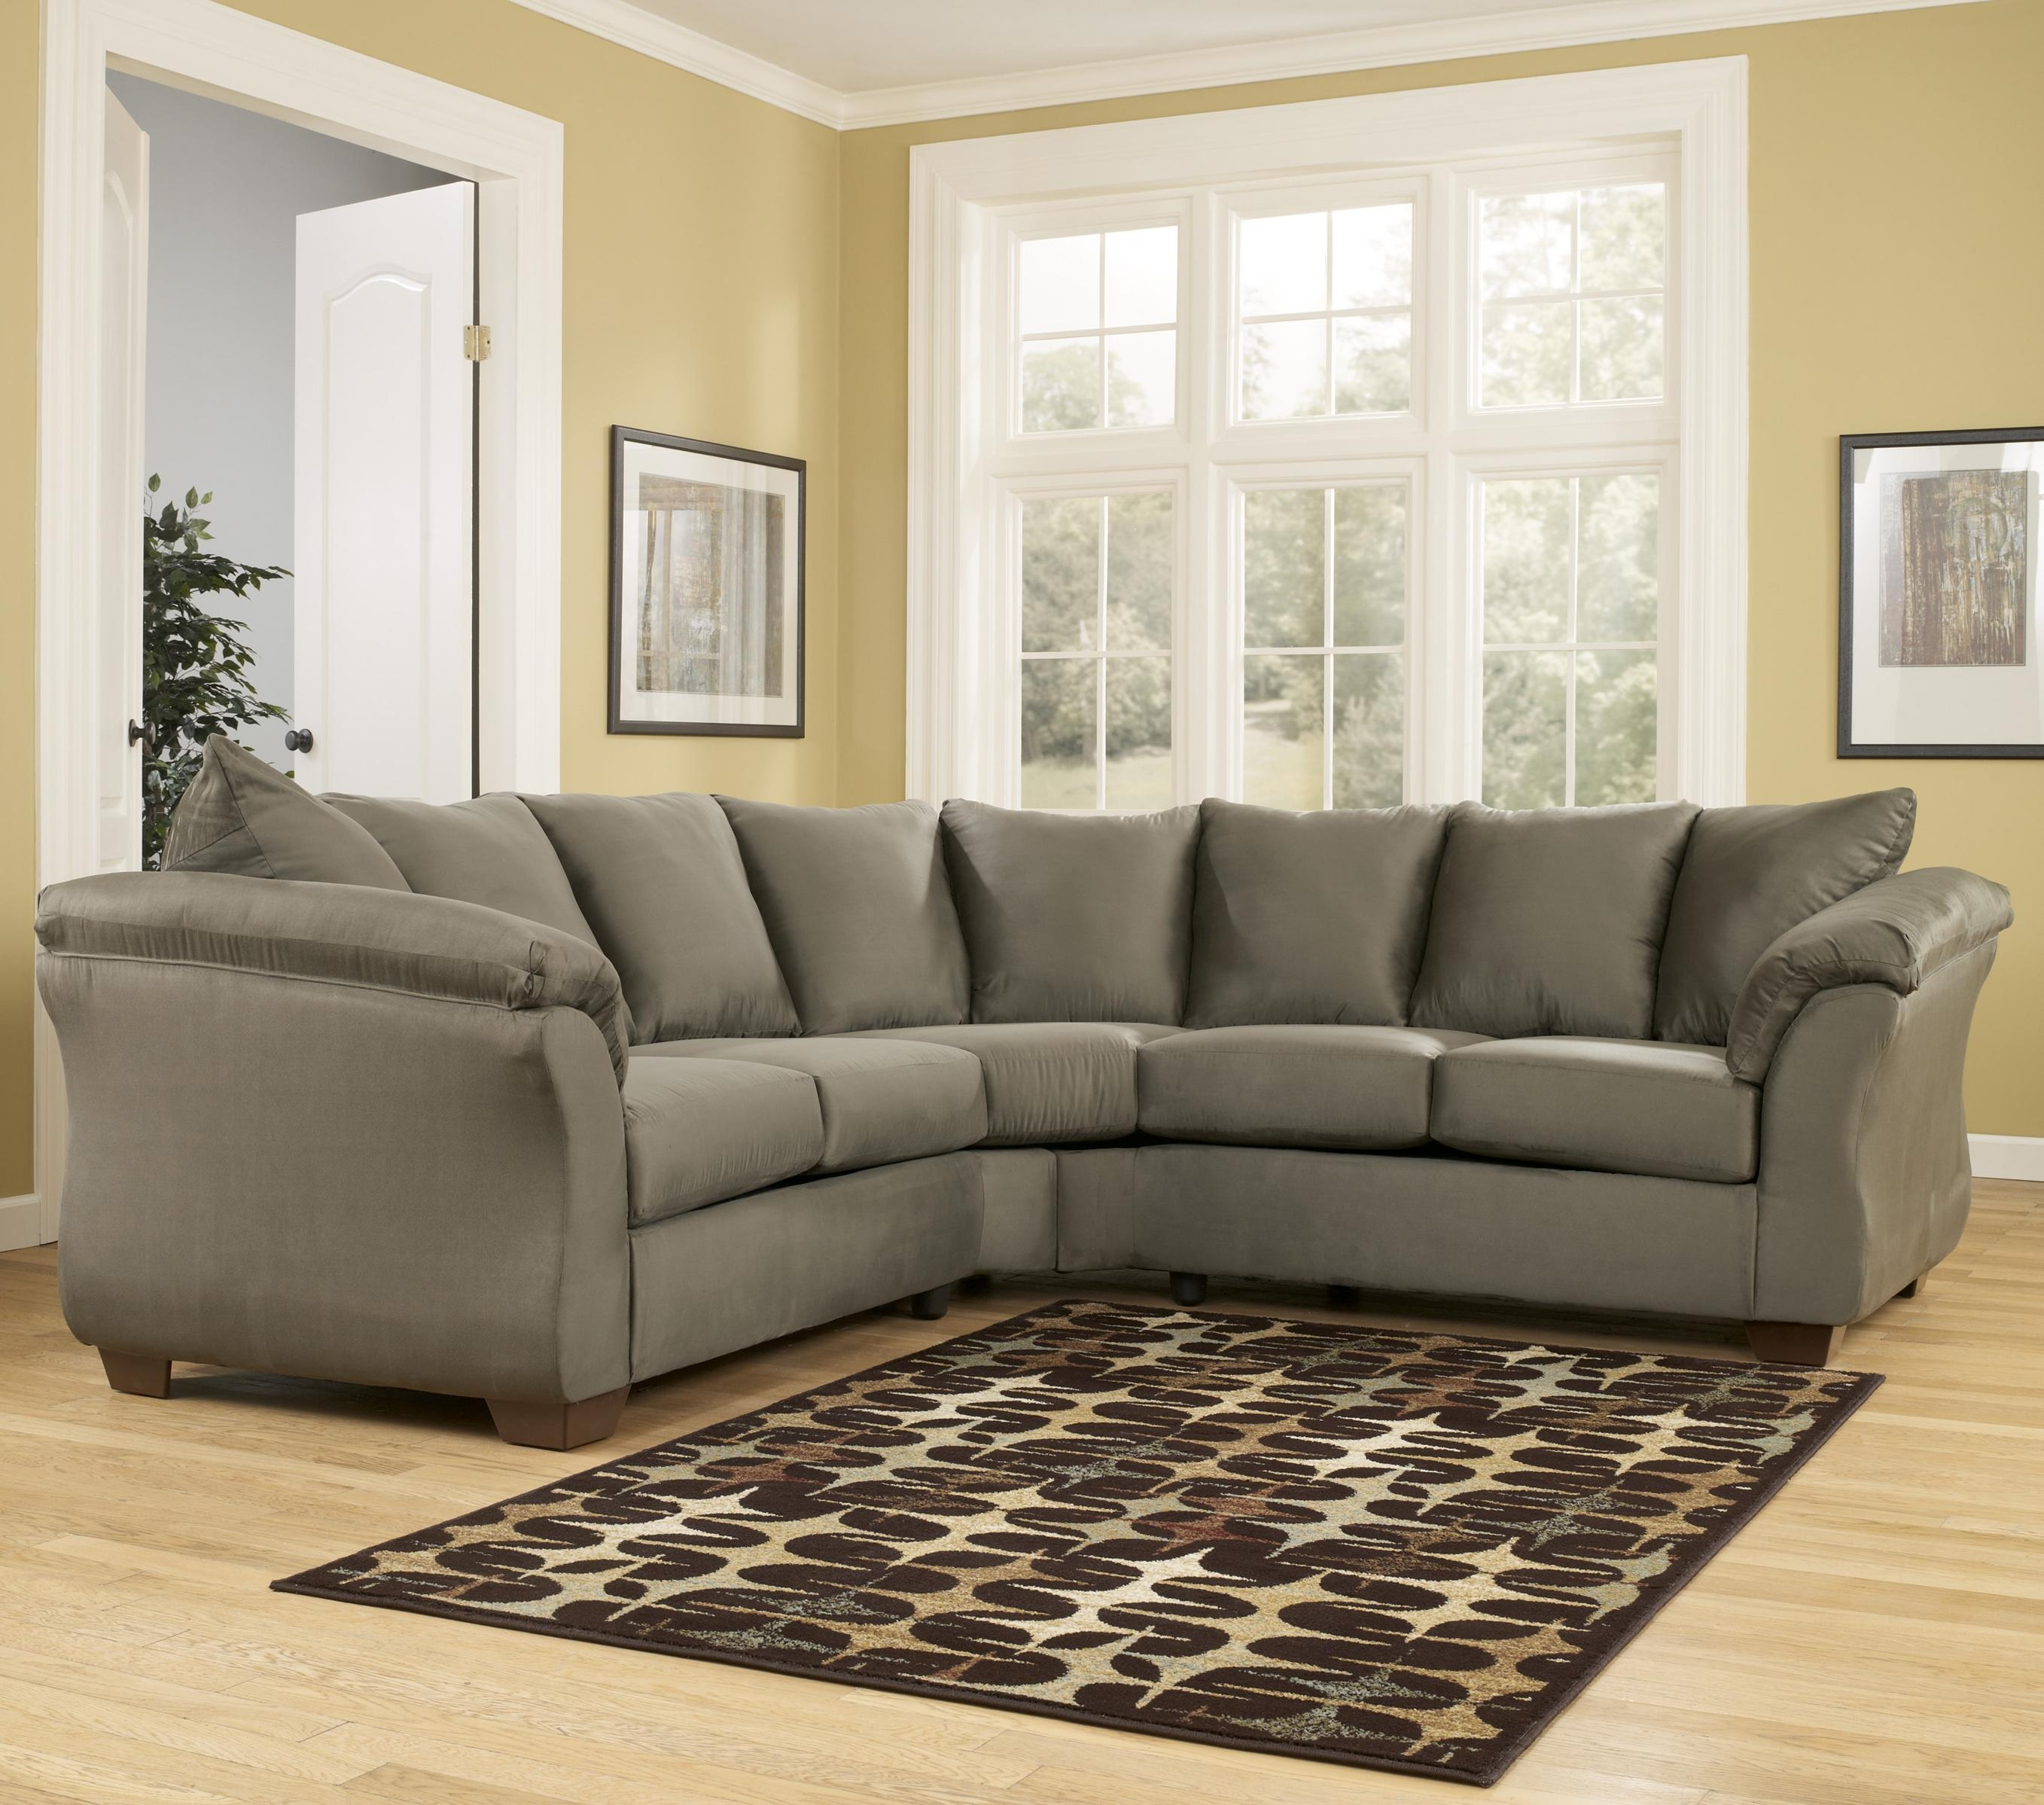 Curved Sectional Sofa Ashley | Tehranmix Decoration Intended For Ashley Curved Sectional (Image 5 of 15)